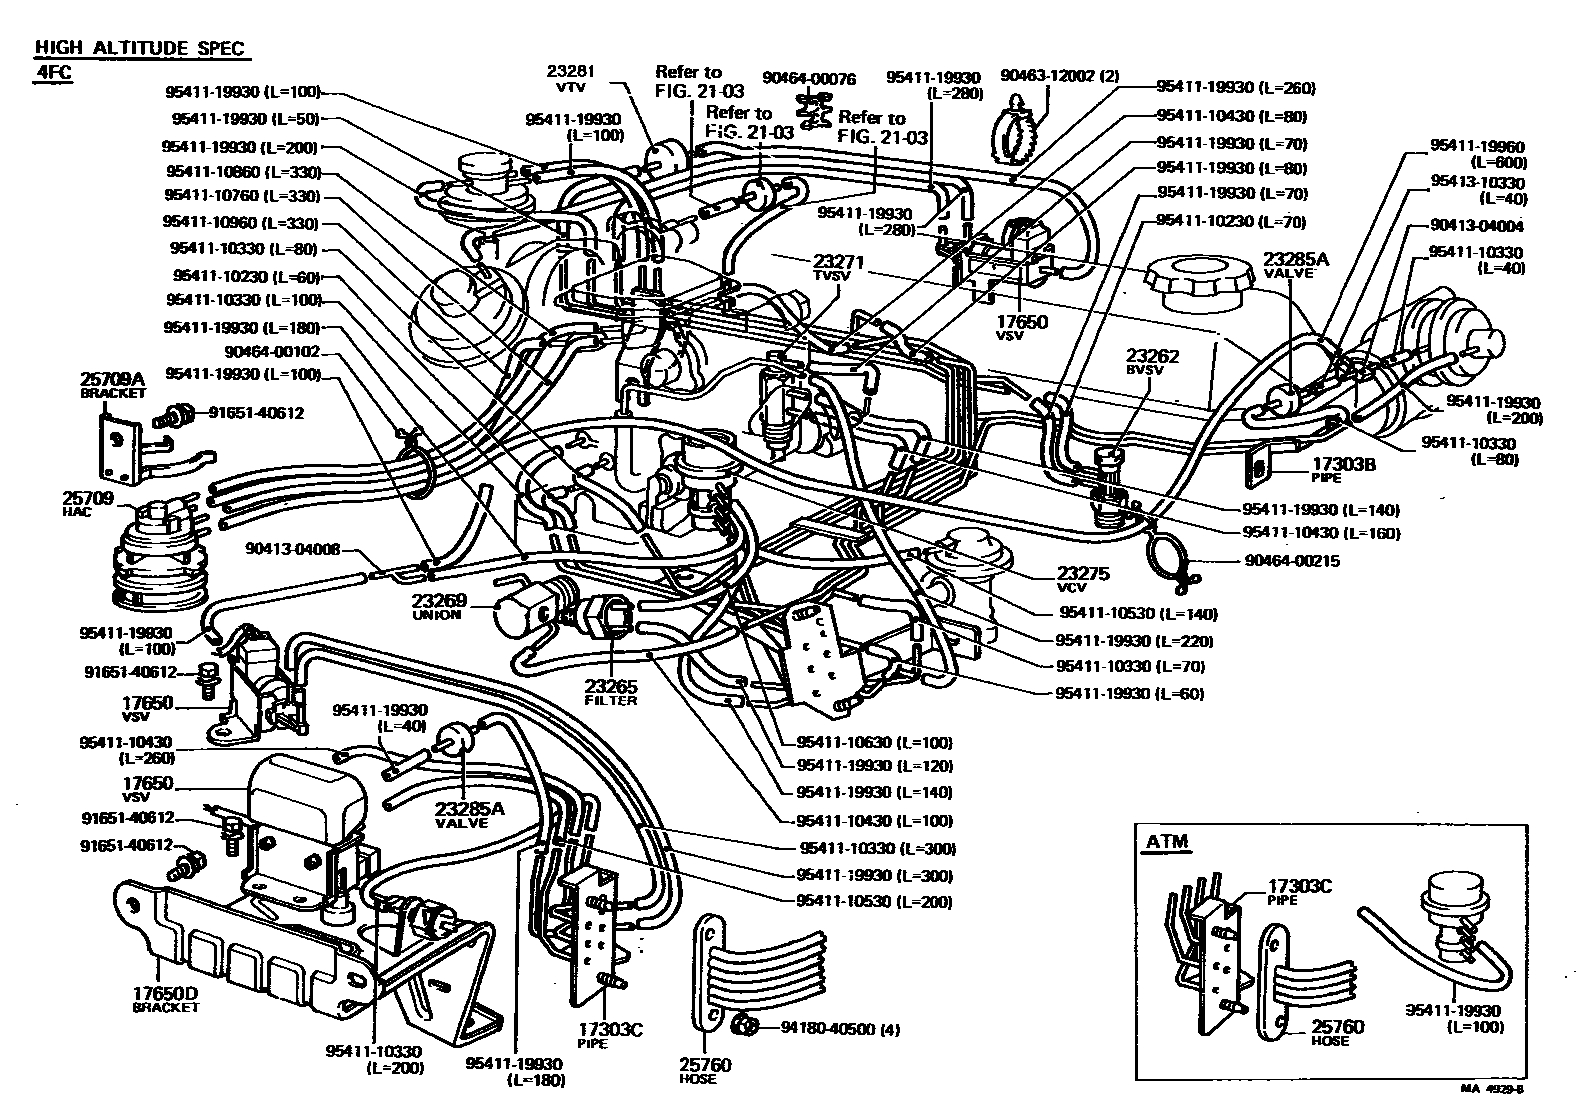 Toyotum Fj Cruiser Engine Diagram